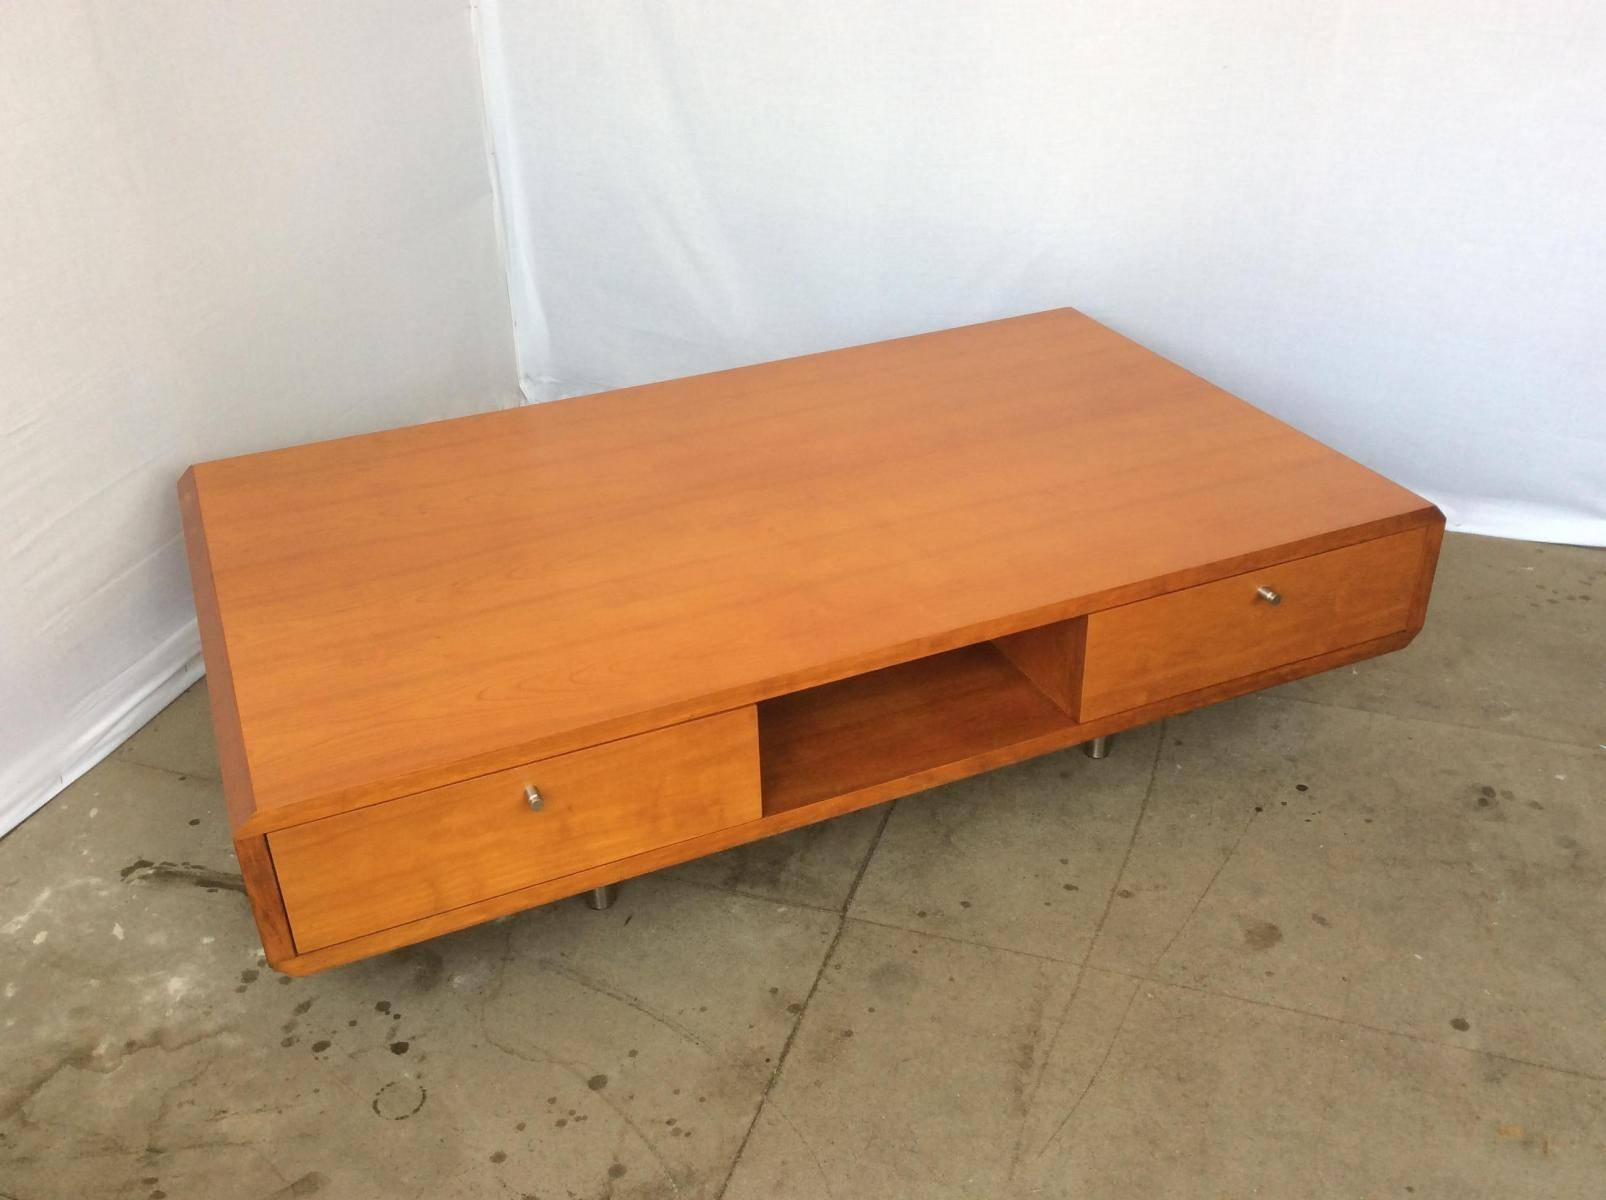 Large Low Modular Four Drawer Coffee Table, 1980S For Sale At Pamono pertaining to Low Coffee Tables With Drawers (Image 21 of 30)